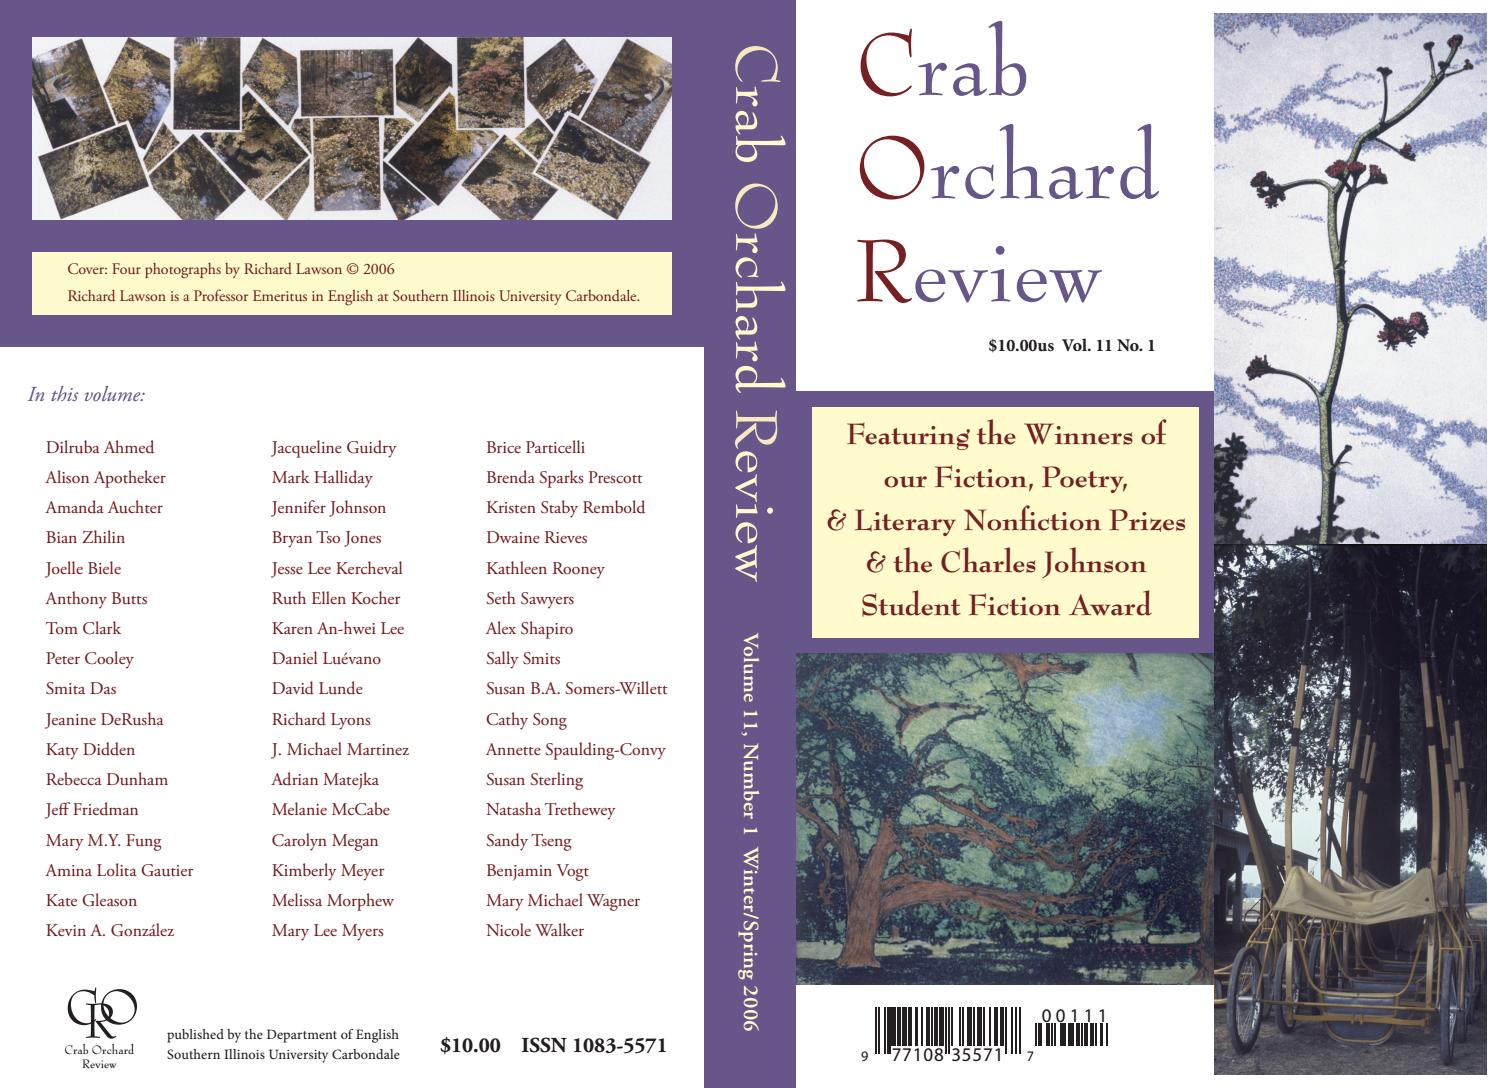 05f80af5586c Crab Orchard Review Vol 11 No 1 W/S 2006 by Crab Orchard Review - issuu